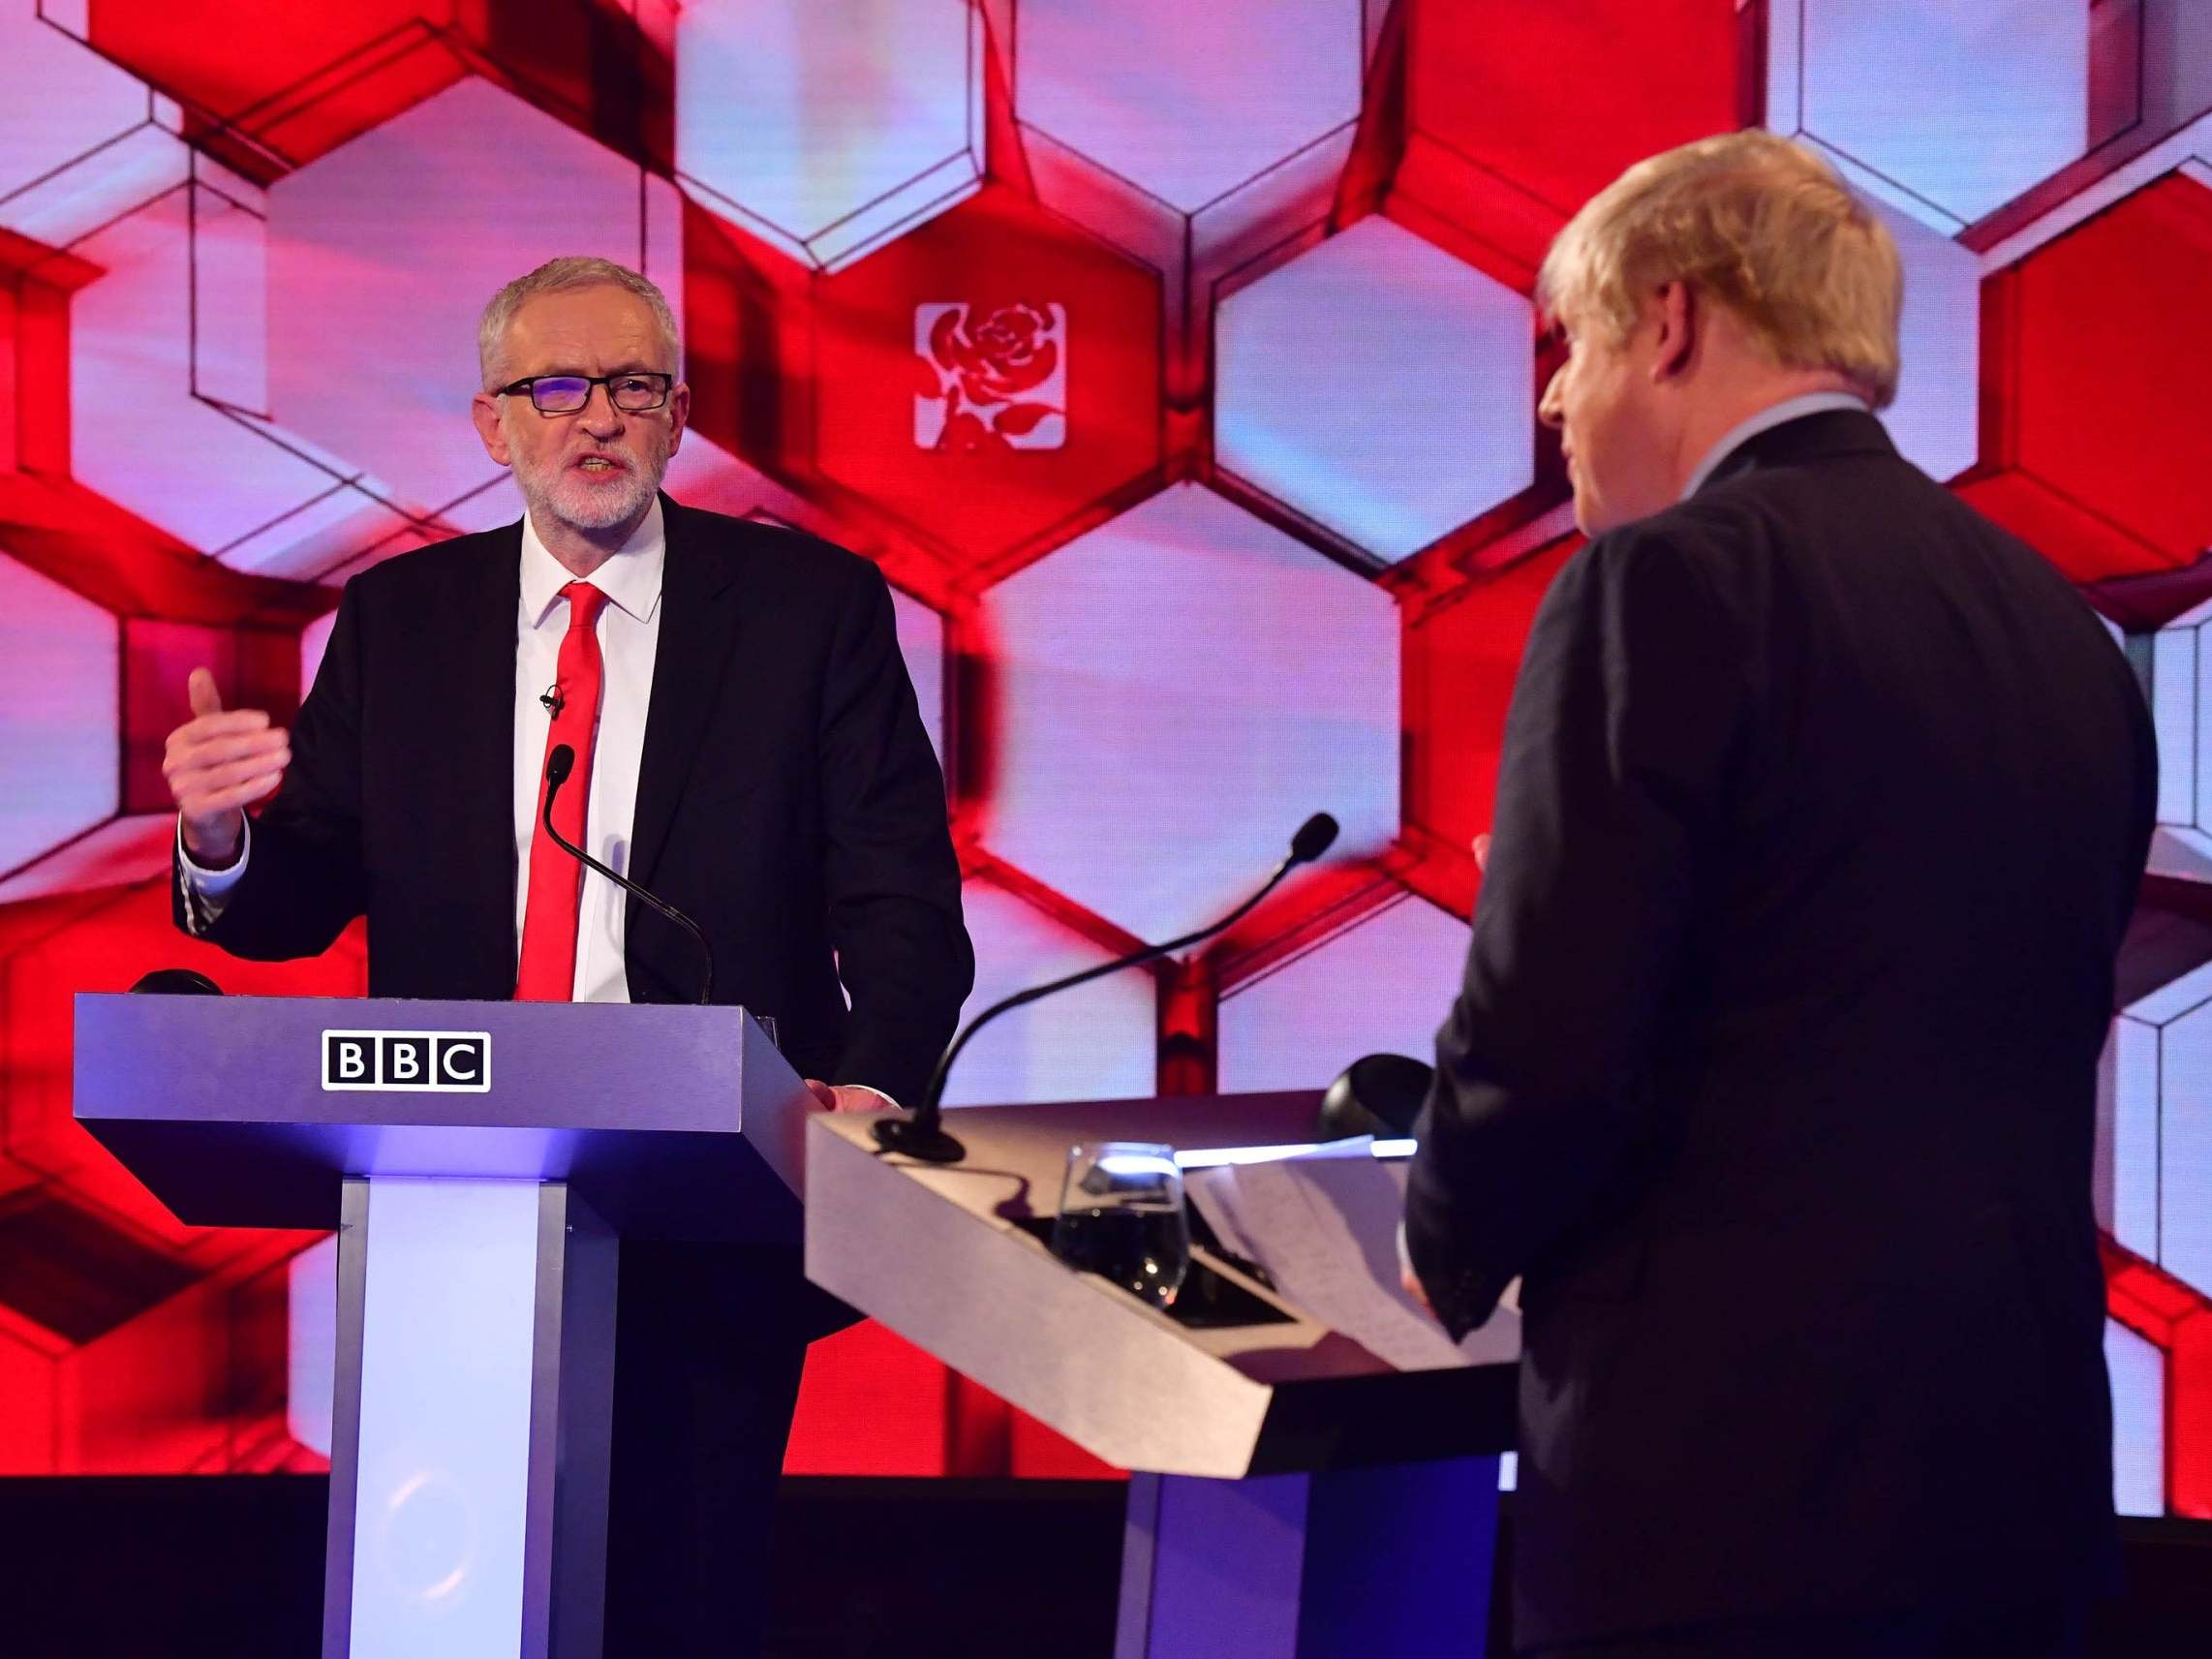 'Consciously' biased BBC contributed to Tory election win, Labour MP says